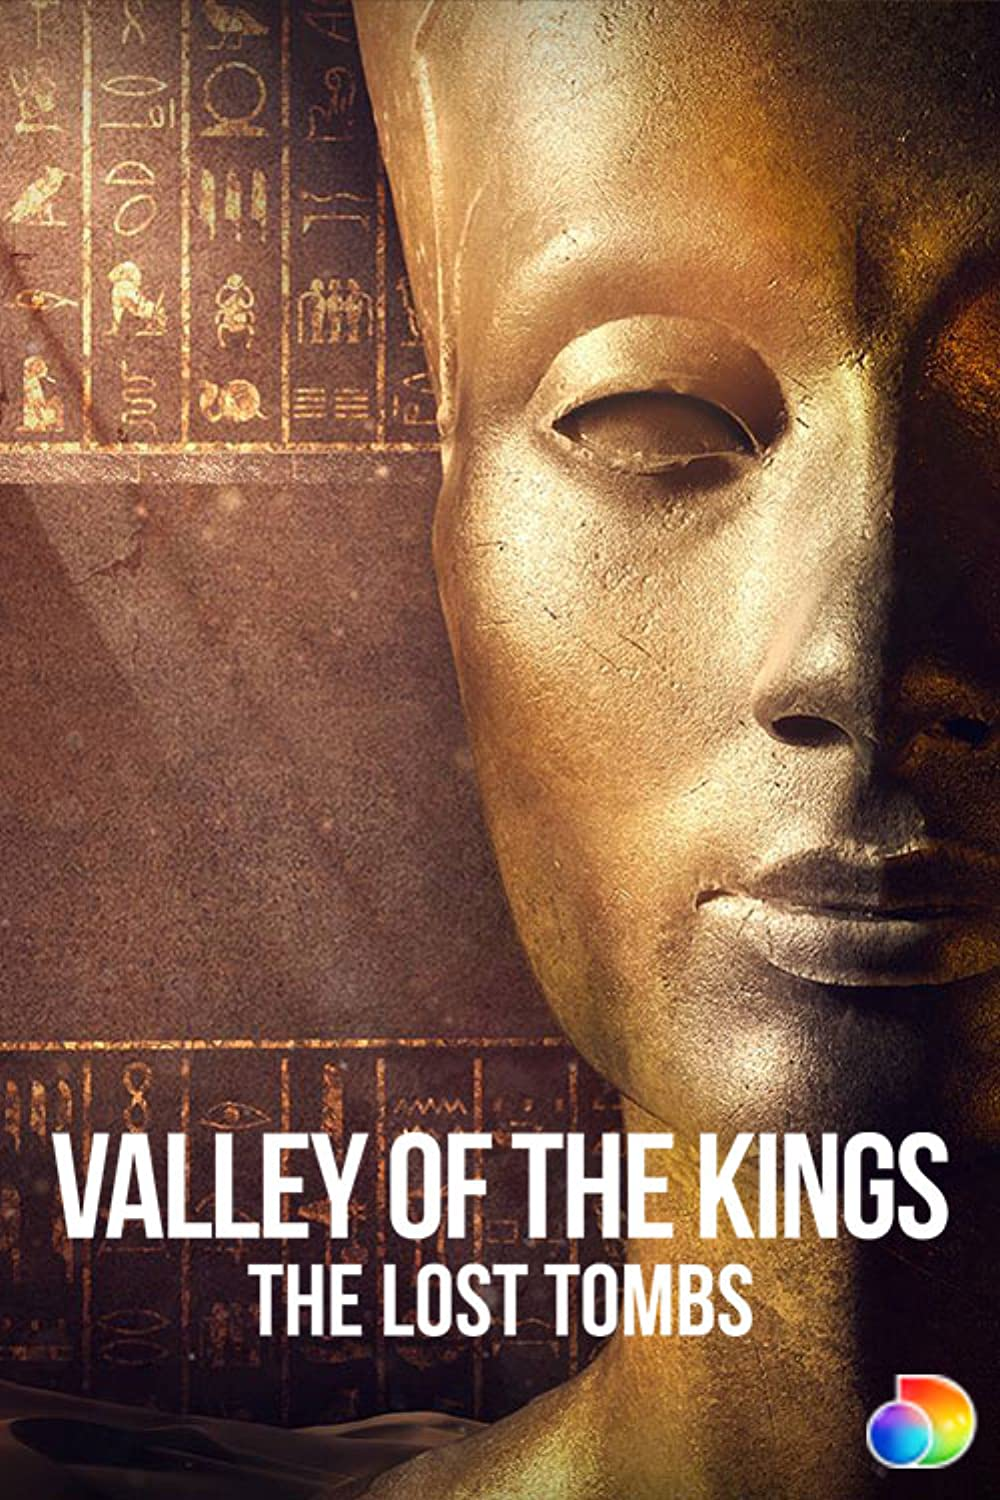 Watch Valley of the Kings: The Lost Tombs Online